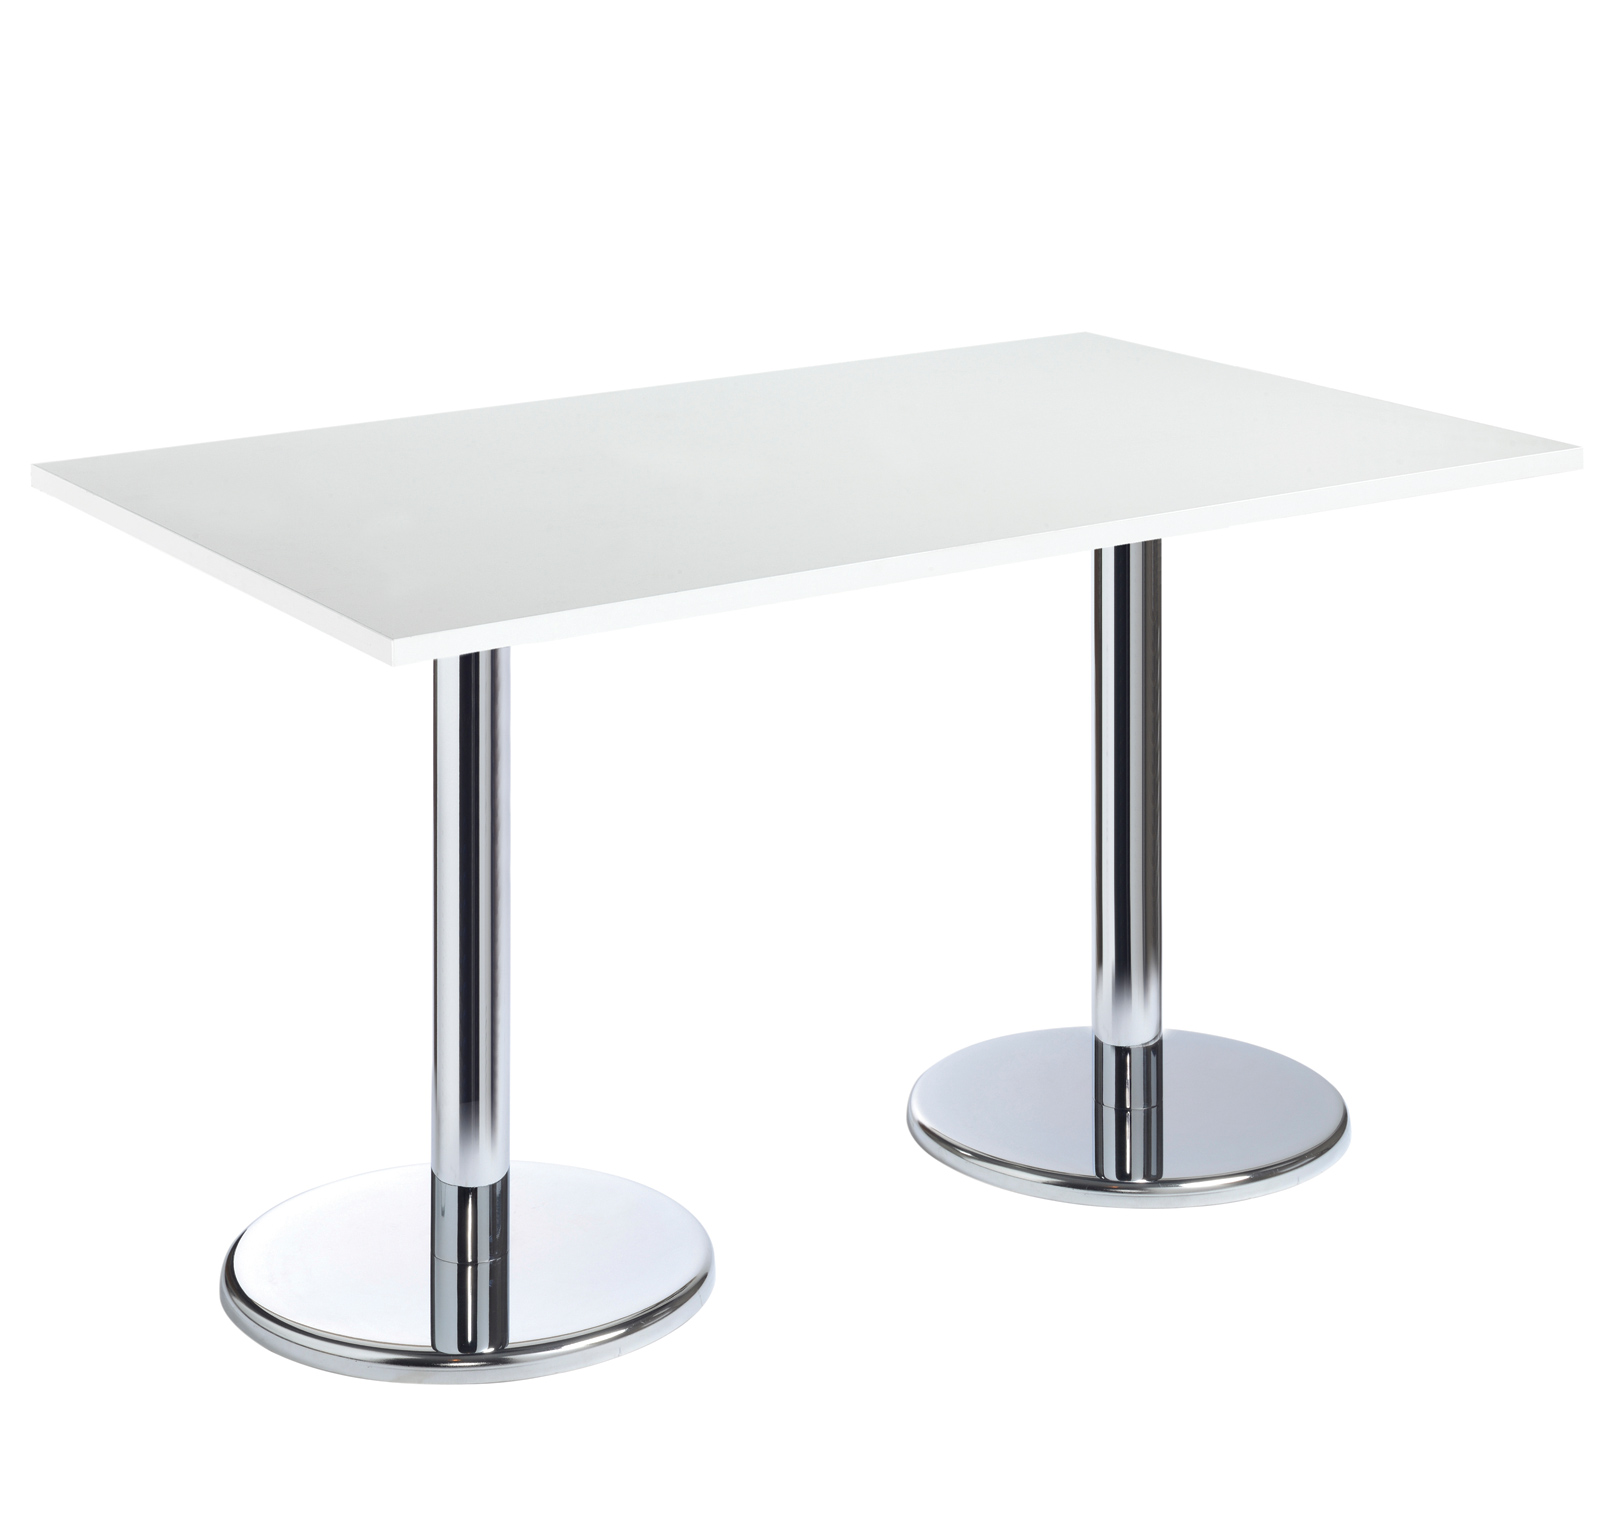 Pisa rectangular table with round chrome base 1600mm x  : b16dhcwh from www.ersos.co.uk size 1600 x 1526 jpeg 174kB